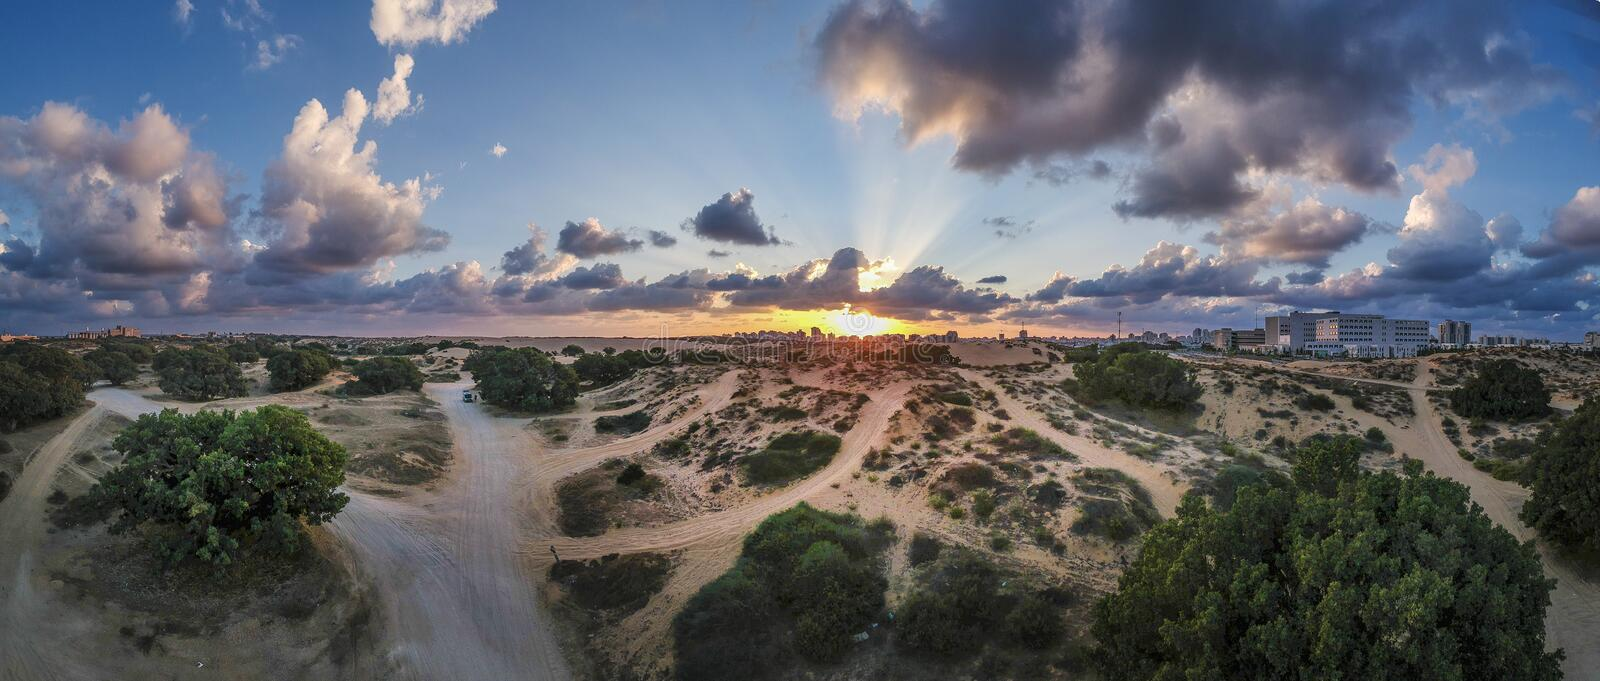 Panoramic view of sand dunes royalty free stock photo